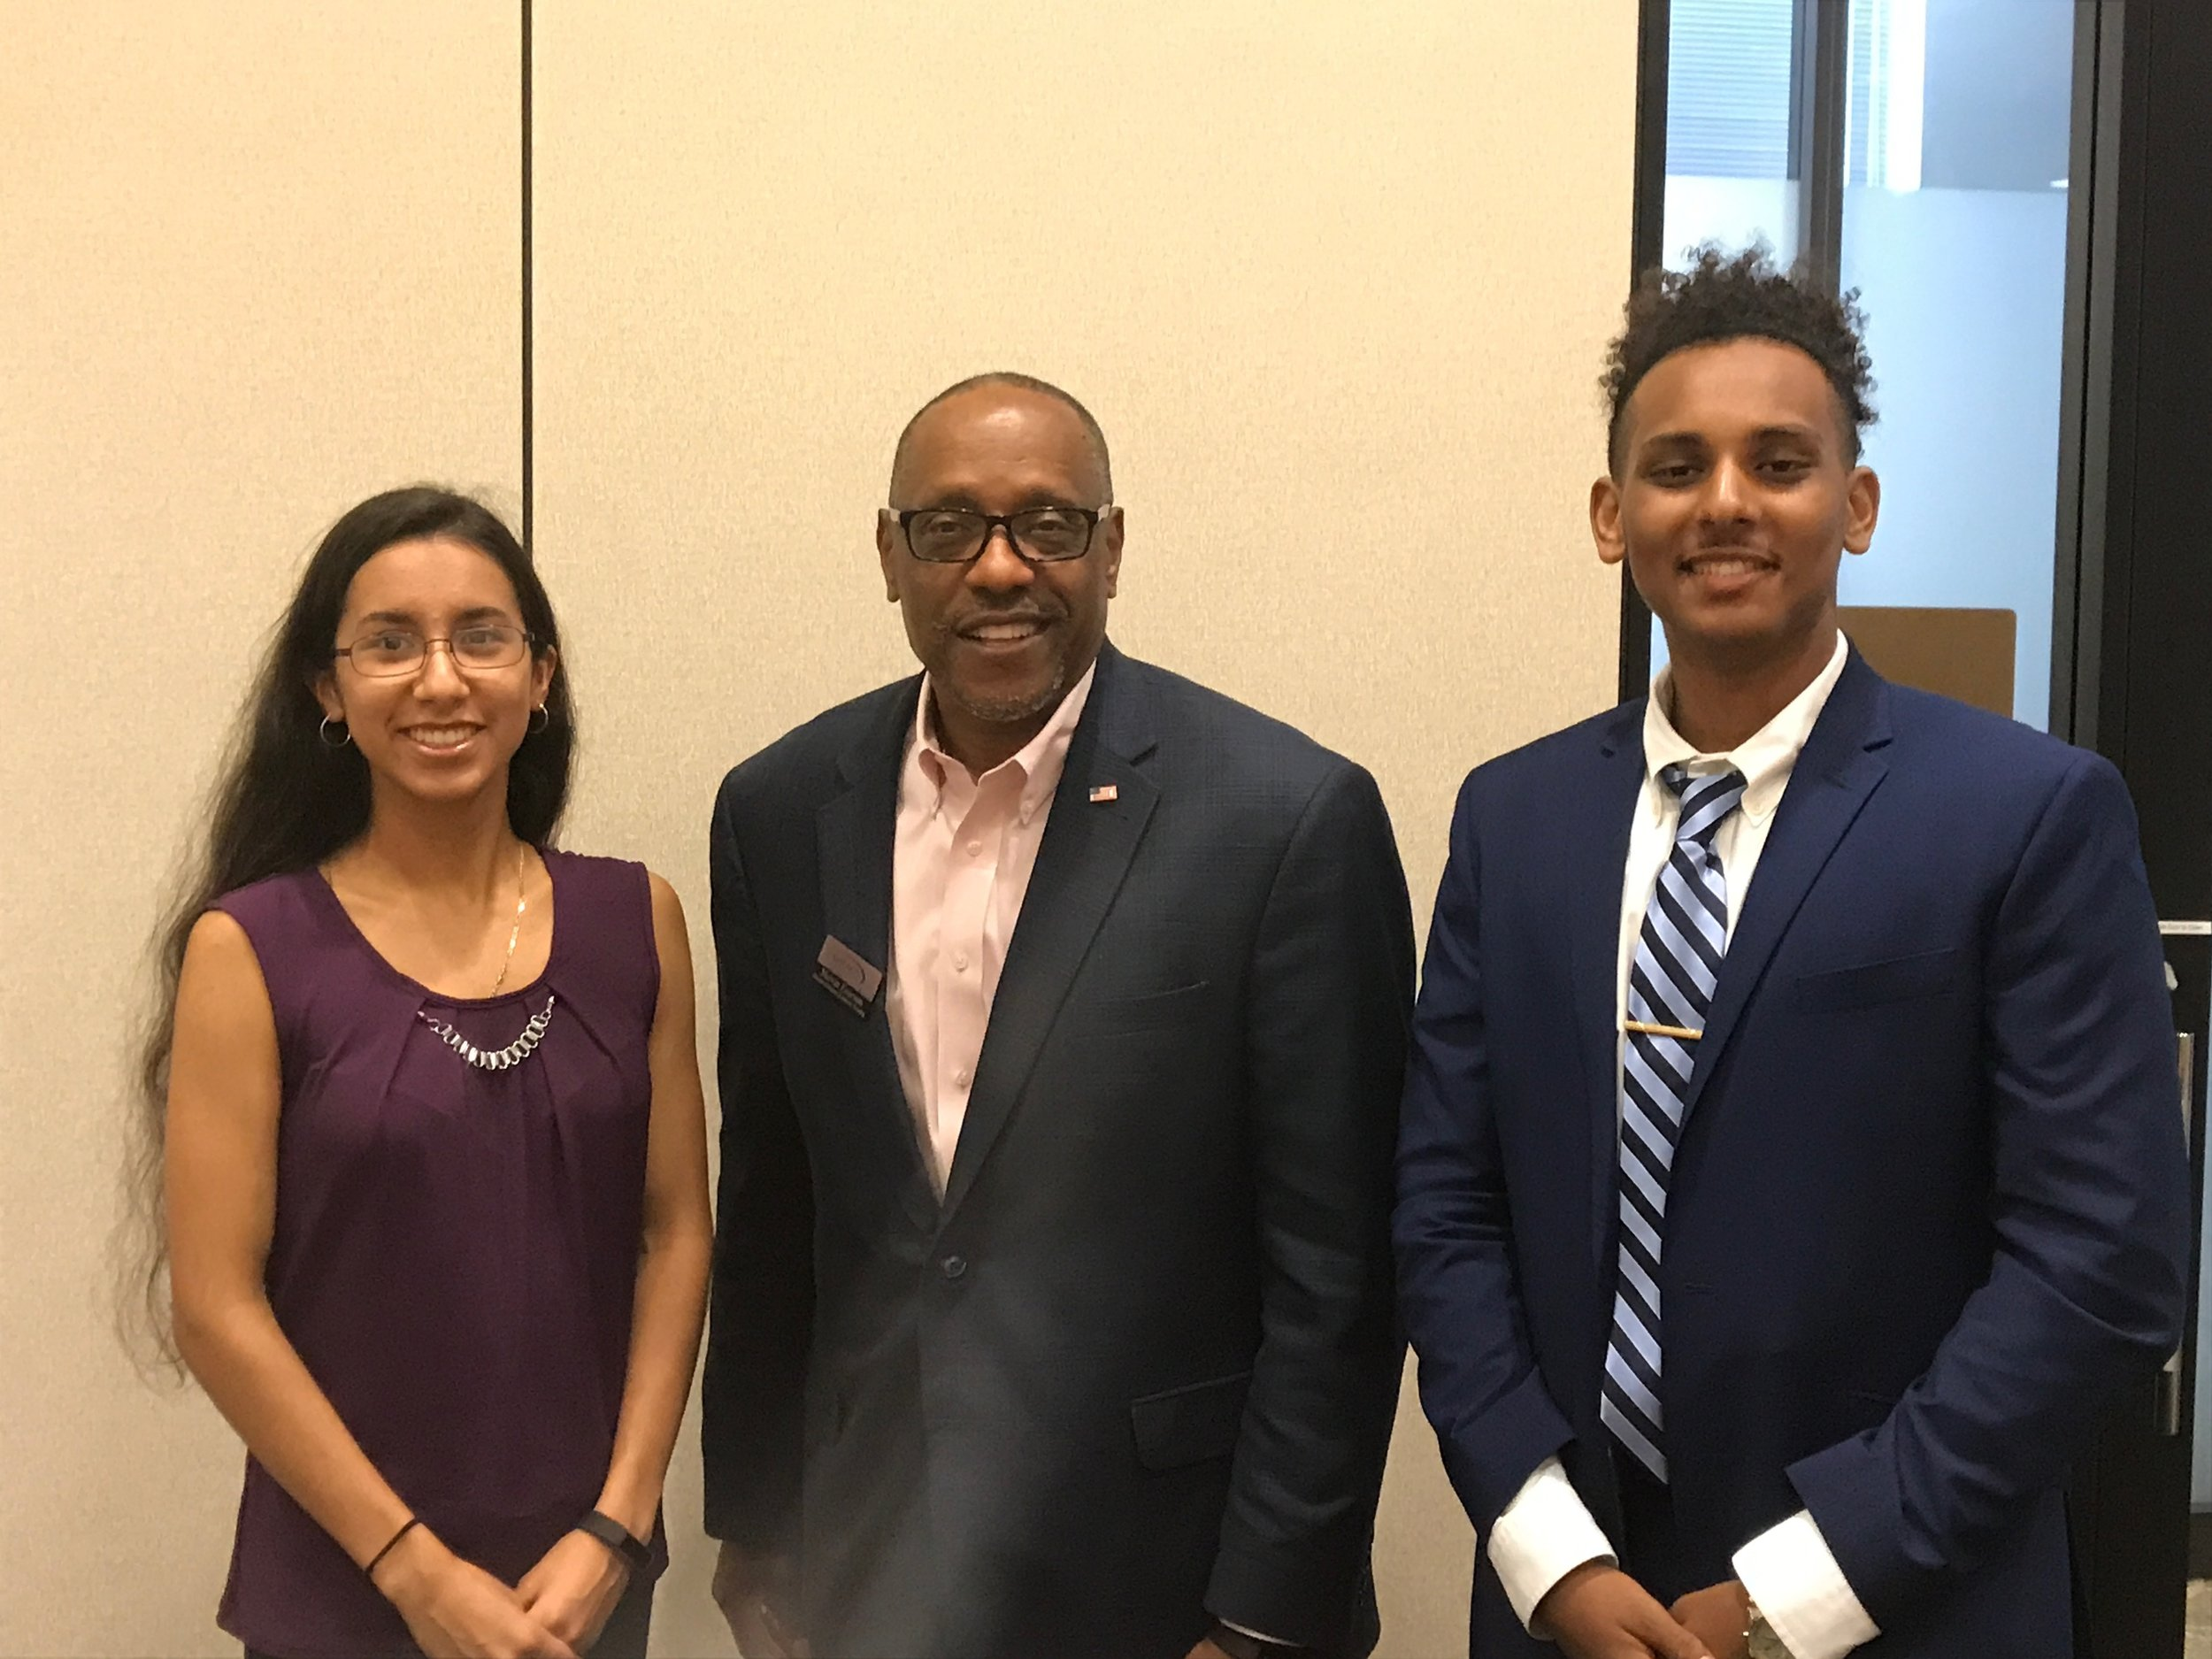 Meeting with Melvin Everson (Director at Gwinnett Tech and Former Representative)